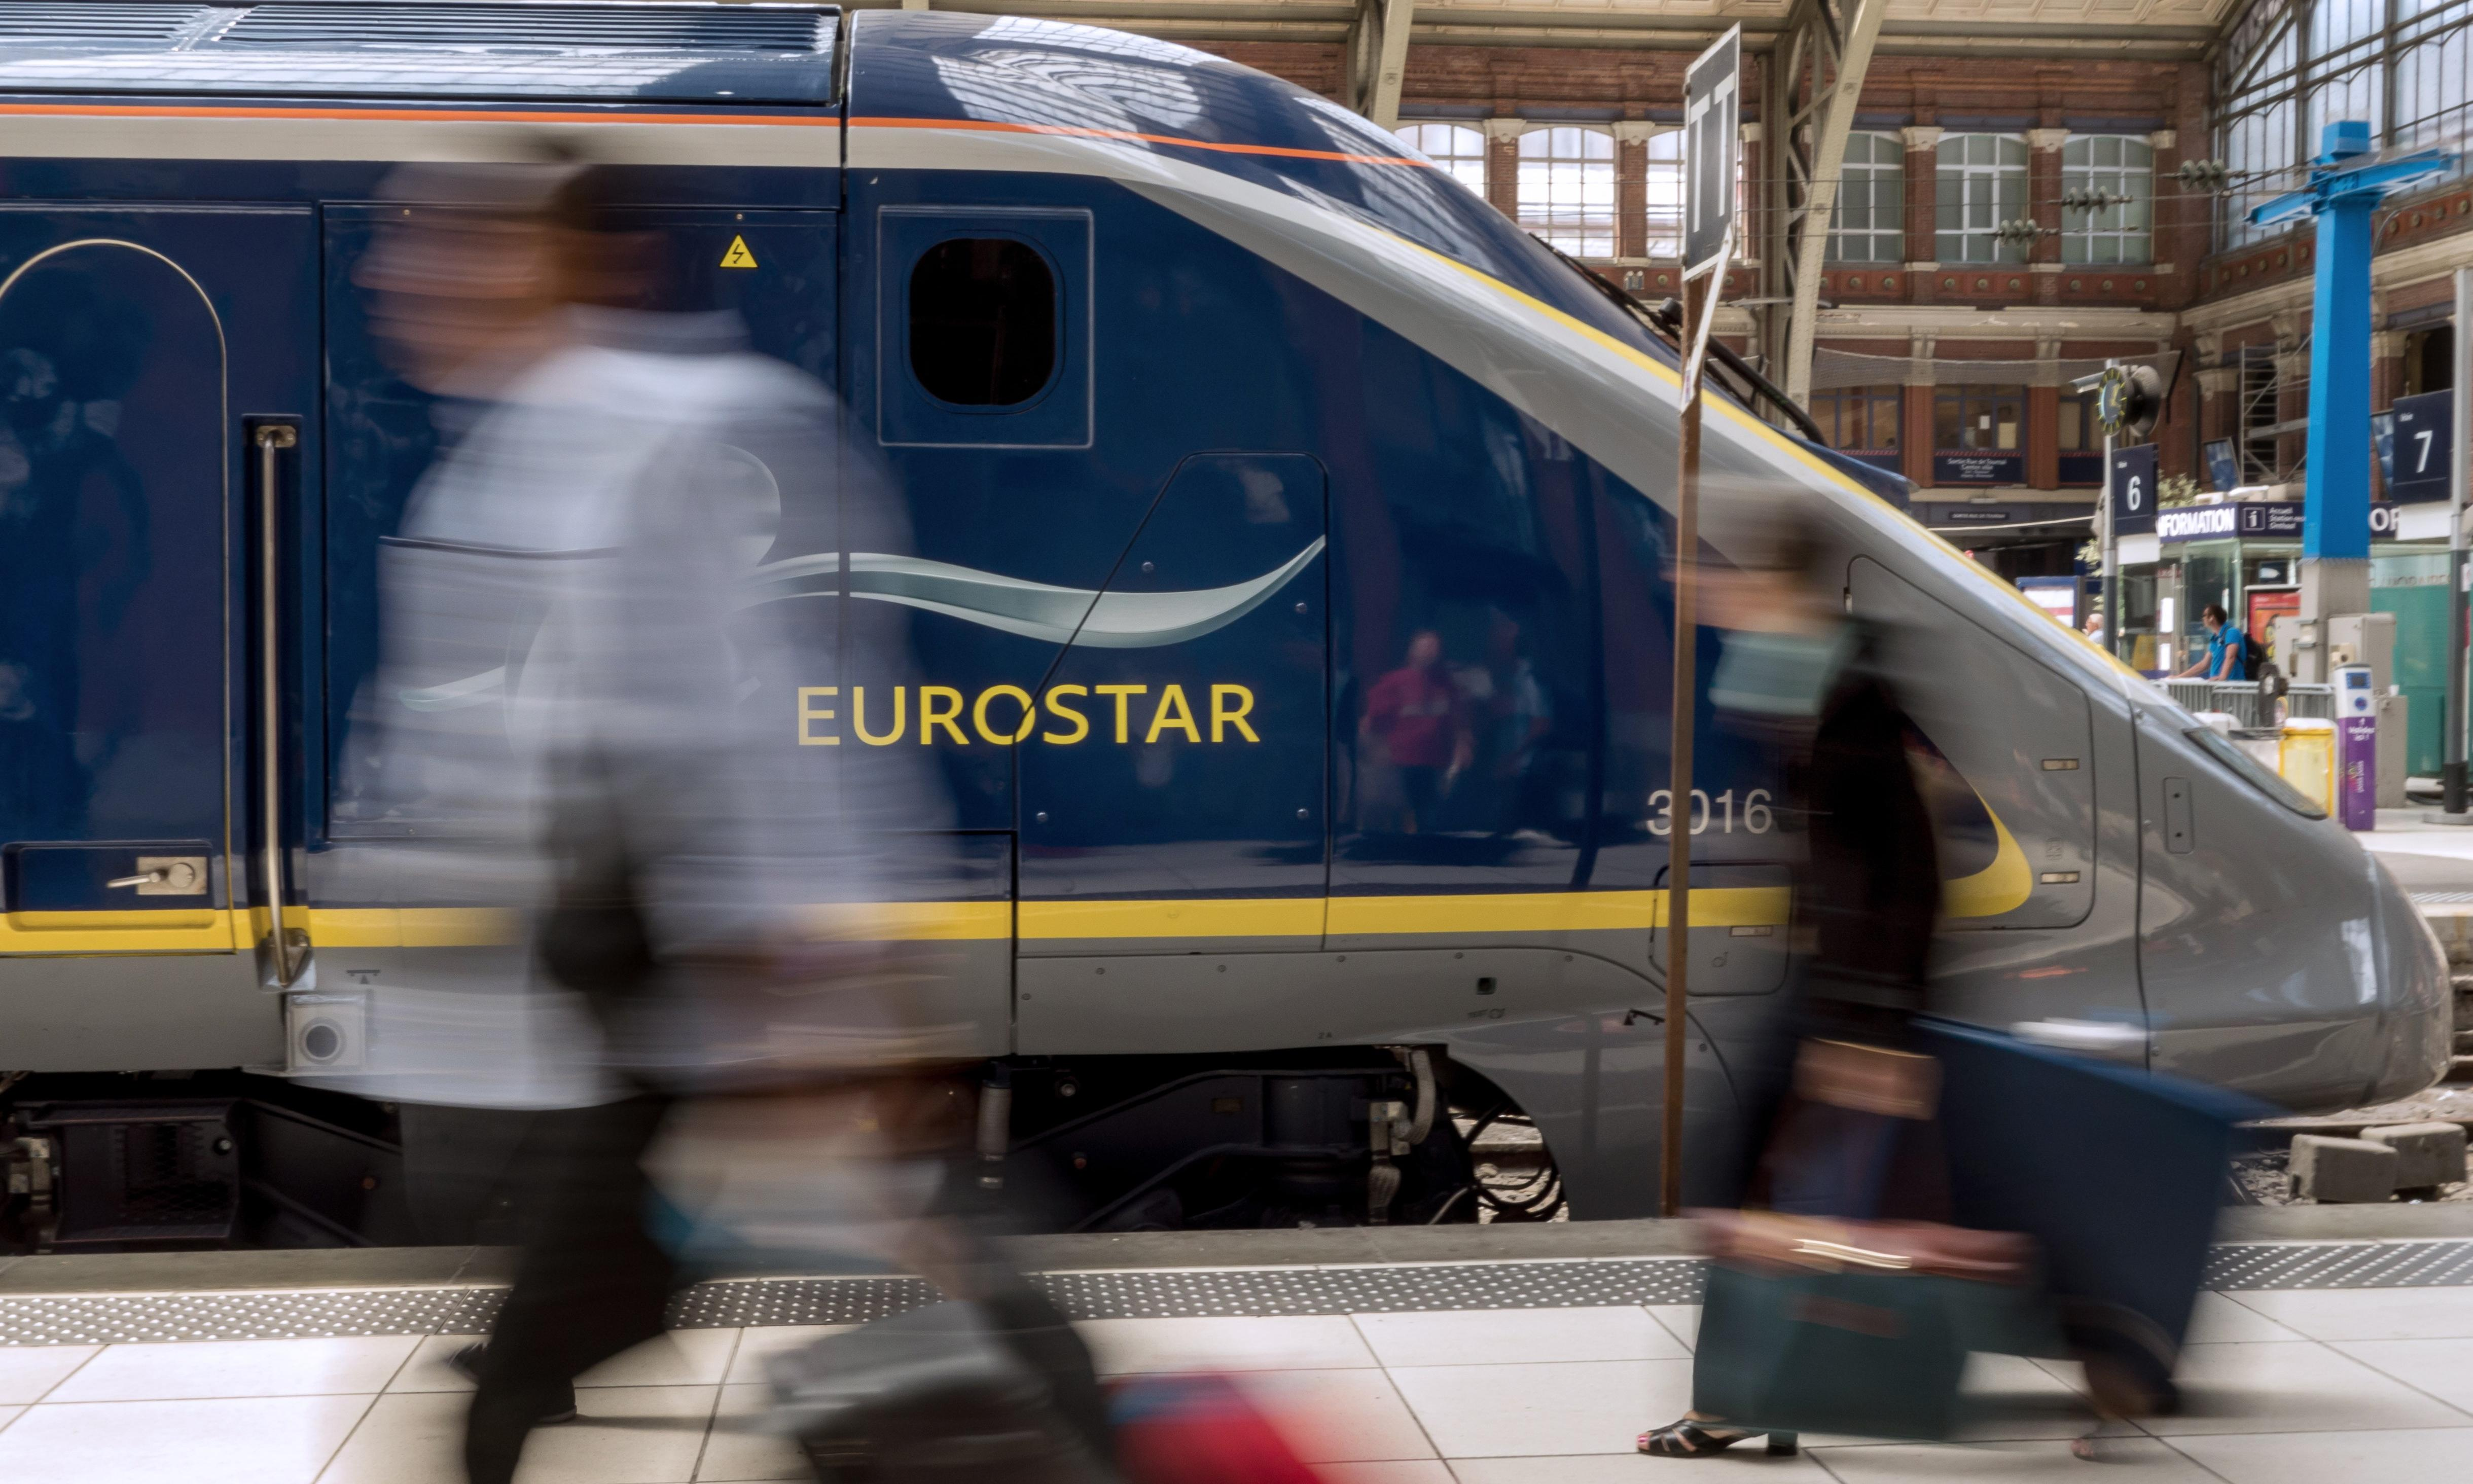 Eurostar told us a train was cancelled when it was just late